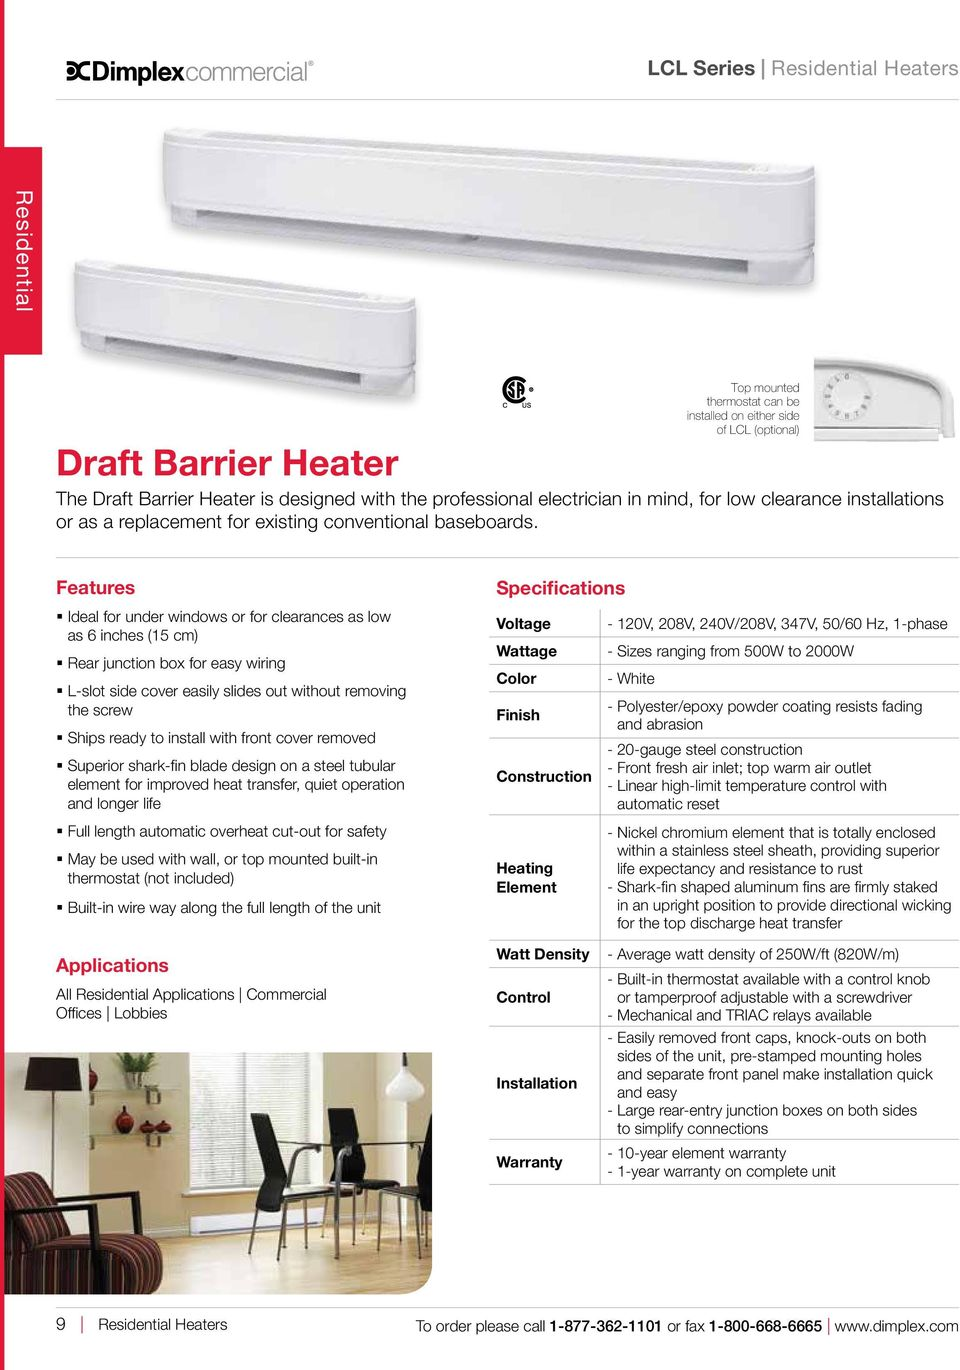 Dimplex PCL8520W31 Proportional Draft Barrier Heater White